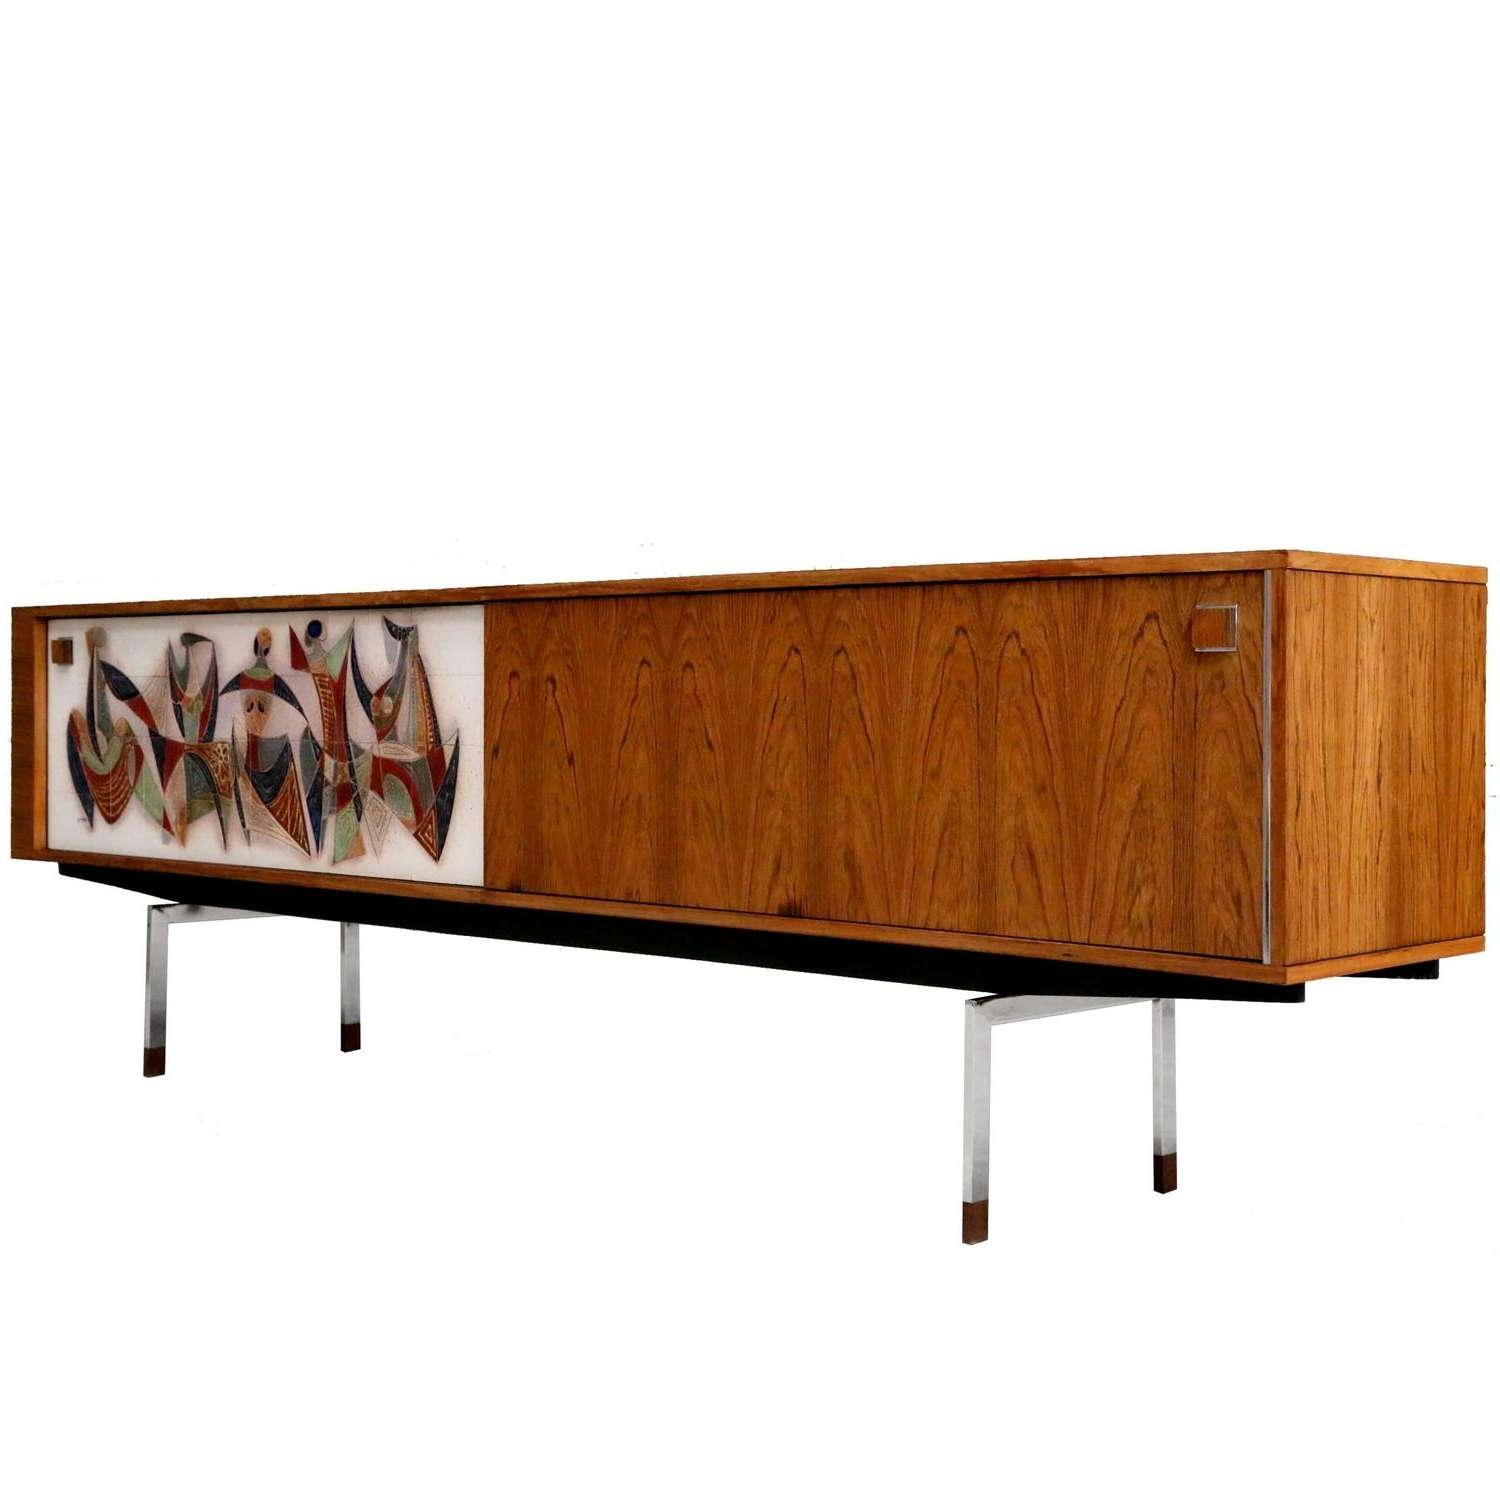 Extra Long Modernist Sideboardarchitect Alfred Hendrickx For With Regard To Long Sideboards (View 4 of 20)